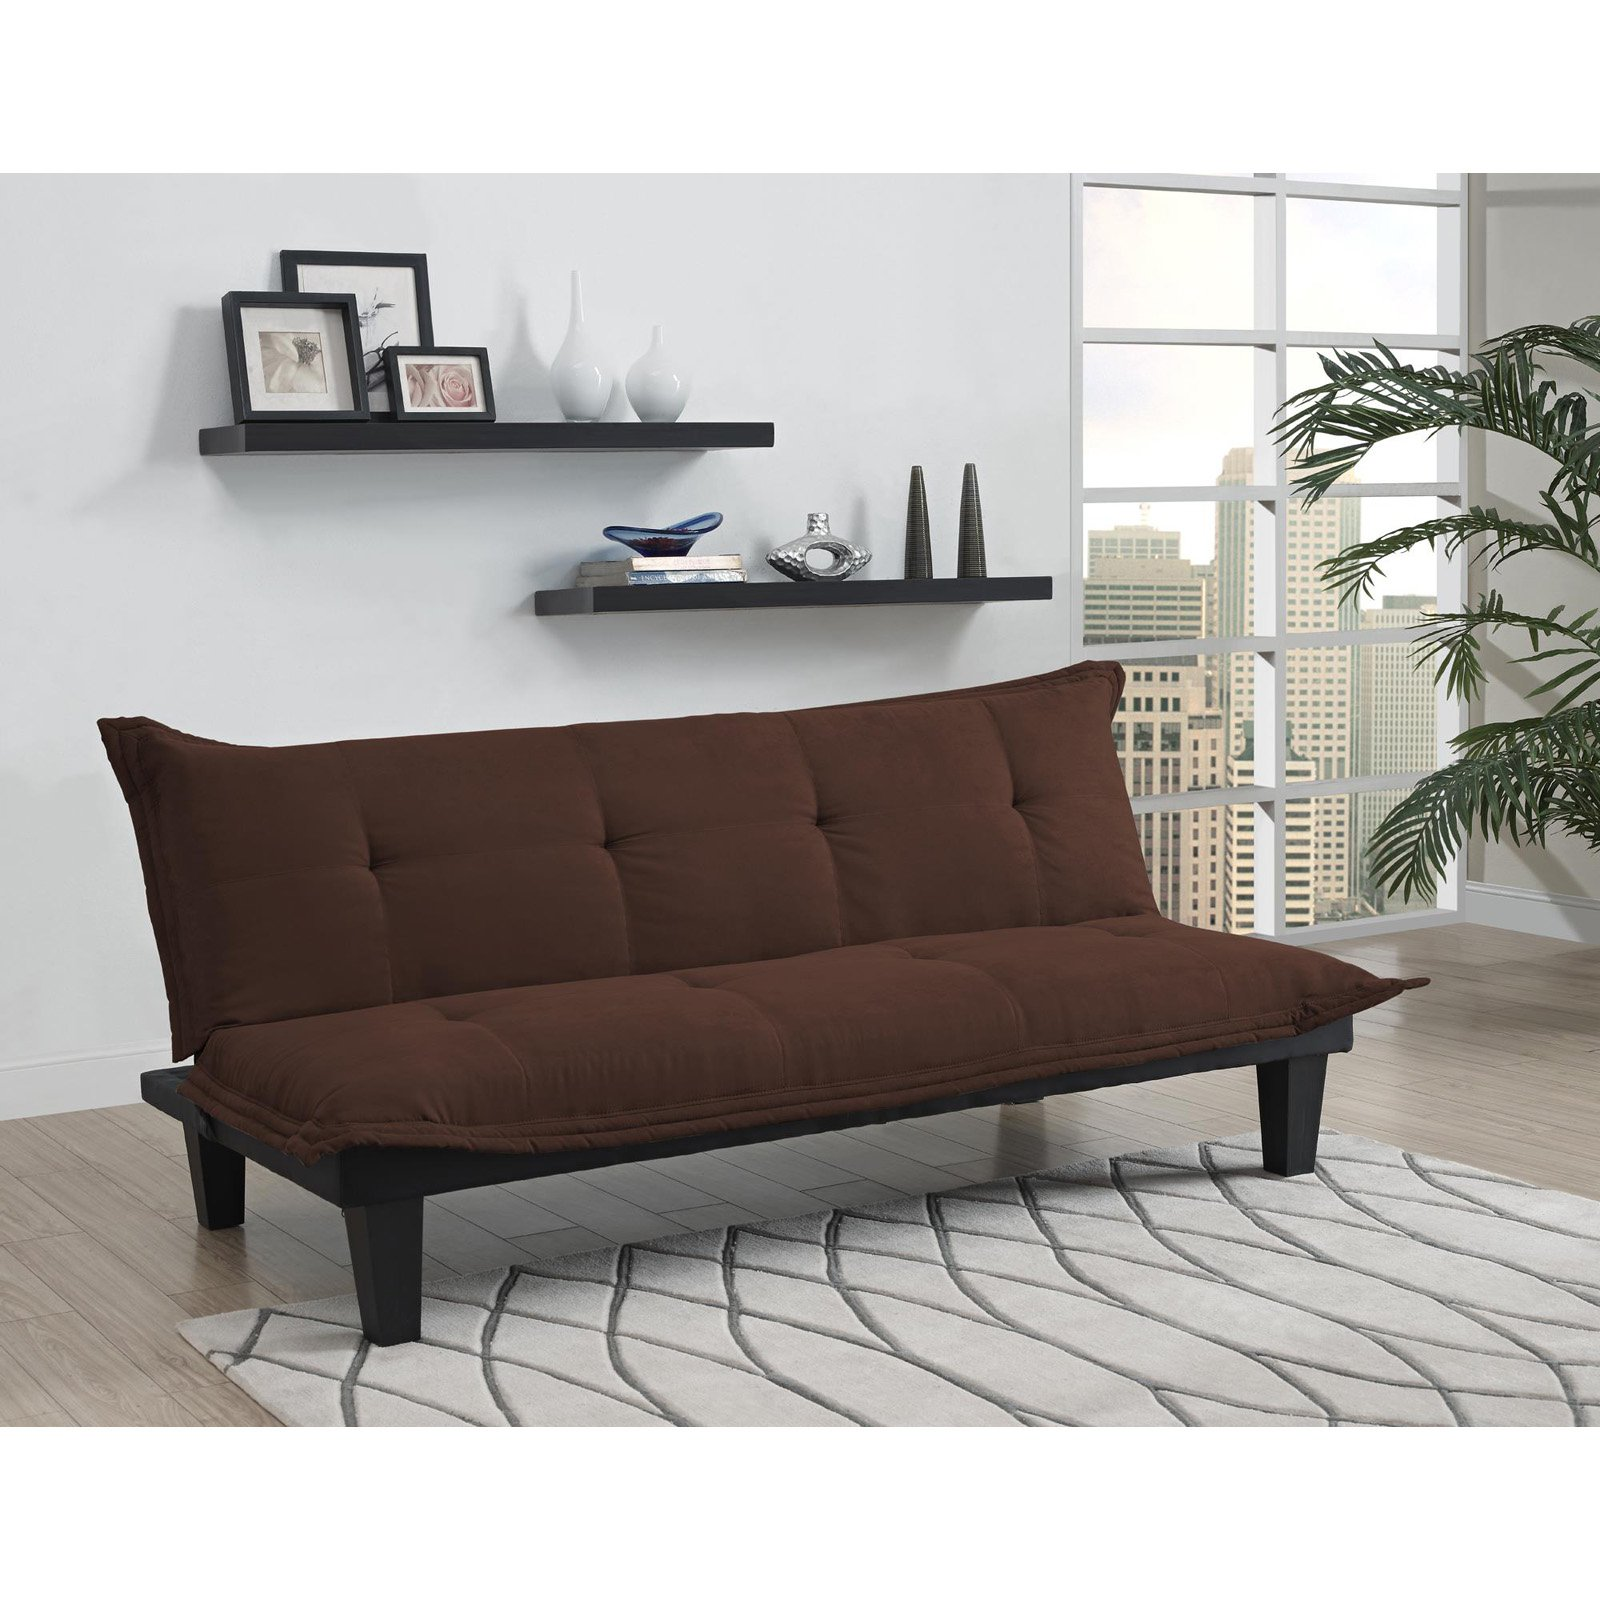 furniture details chelsea products eng dhp convertible living dorel home room futon futons